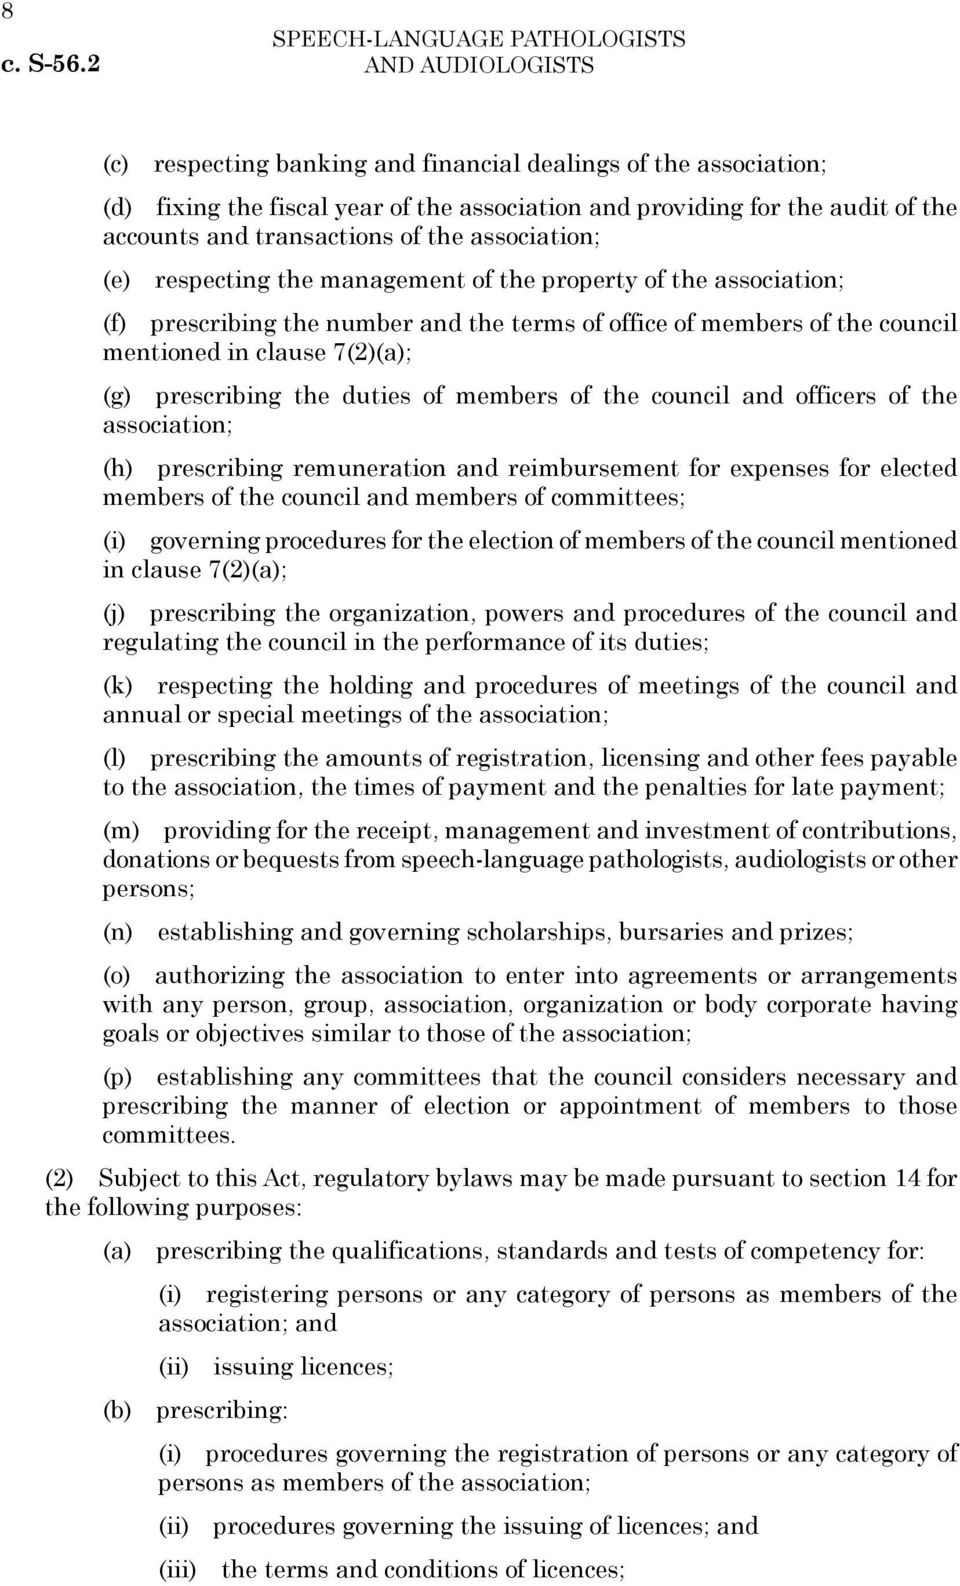 7(2)(a); (g) prescribing the duties of members of the council and officers of the association; (h) prescribing remuneration and reimbursement for expenses for elected members of the council and